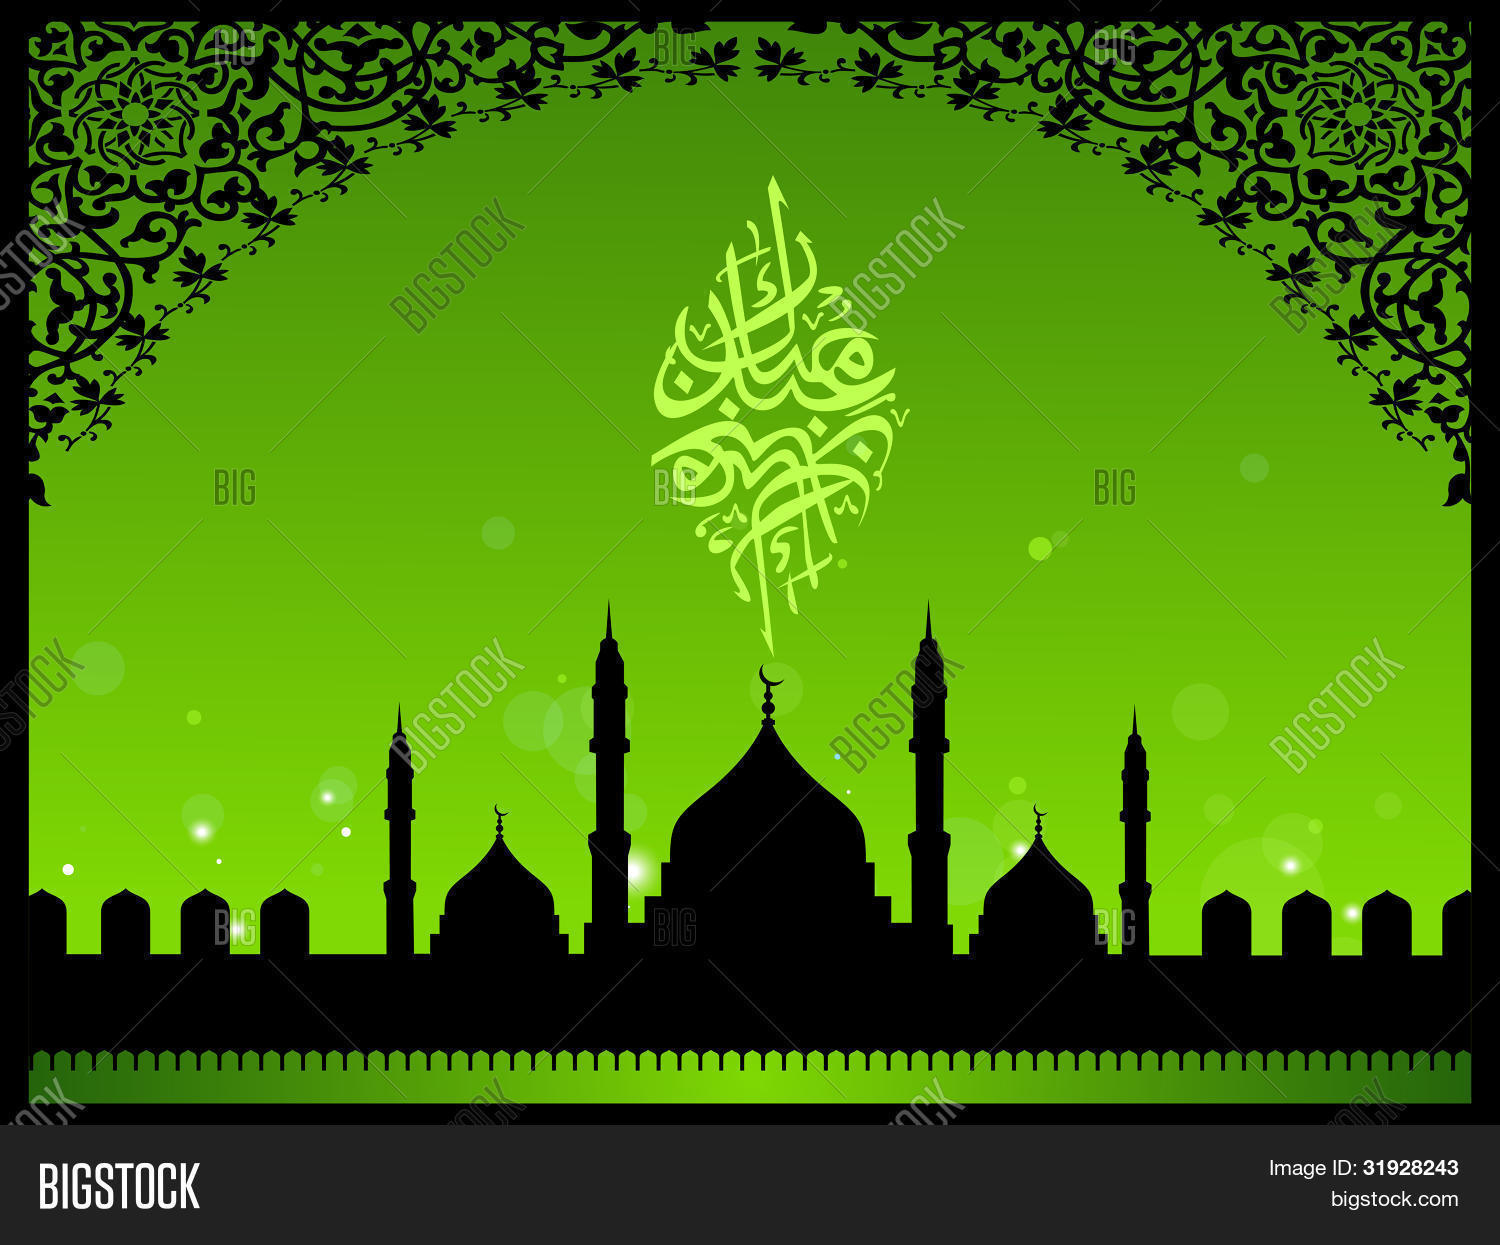 Arabic Islamic Calligraphy Eid Vector & Photo | Bigstock